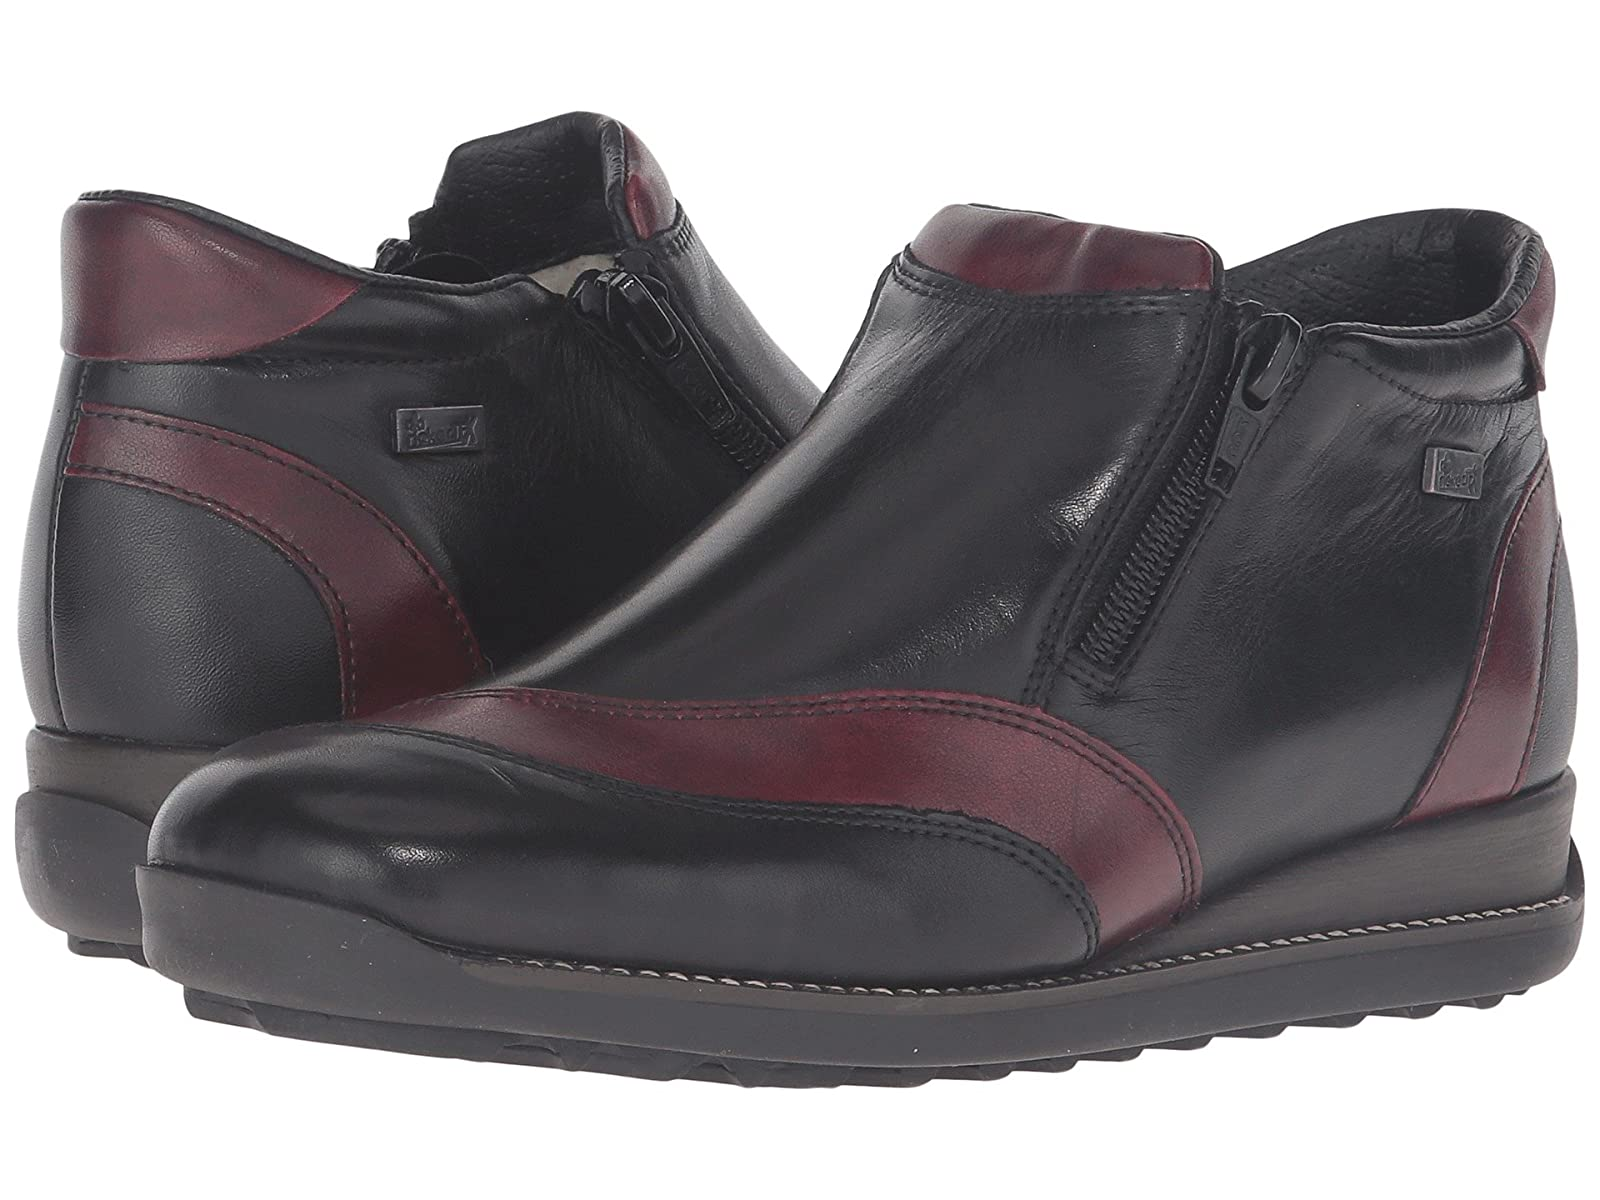 Rieker 44273Economical and quality shoes